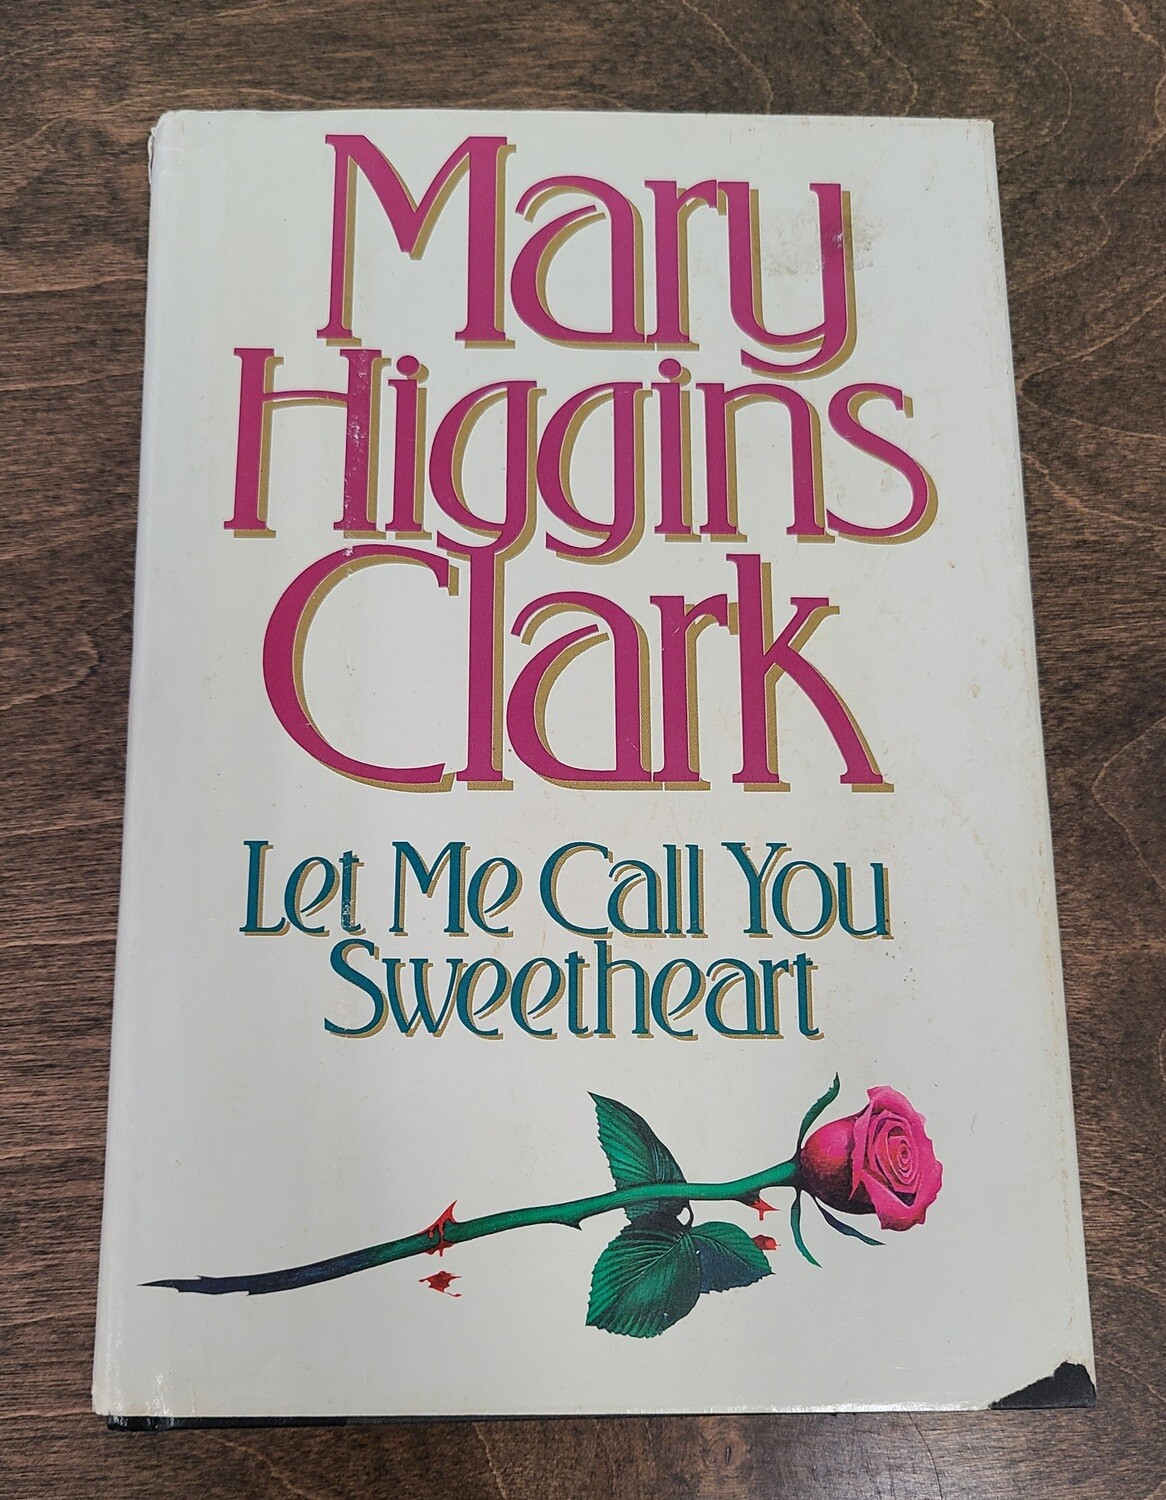 Let Me Call You Sweetheart by Mary Higgins Clark - Hardback